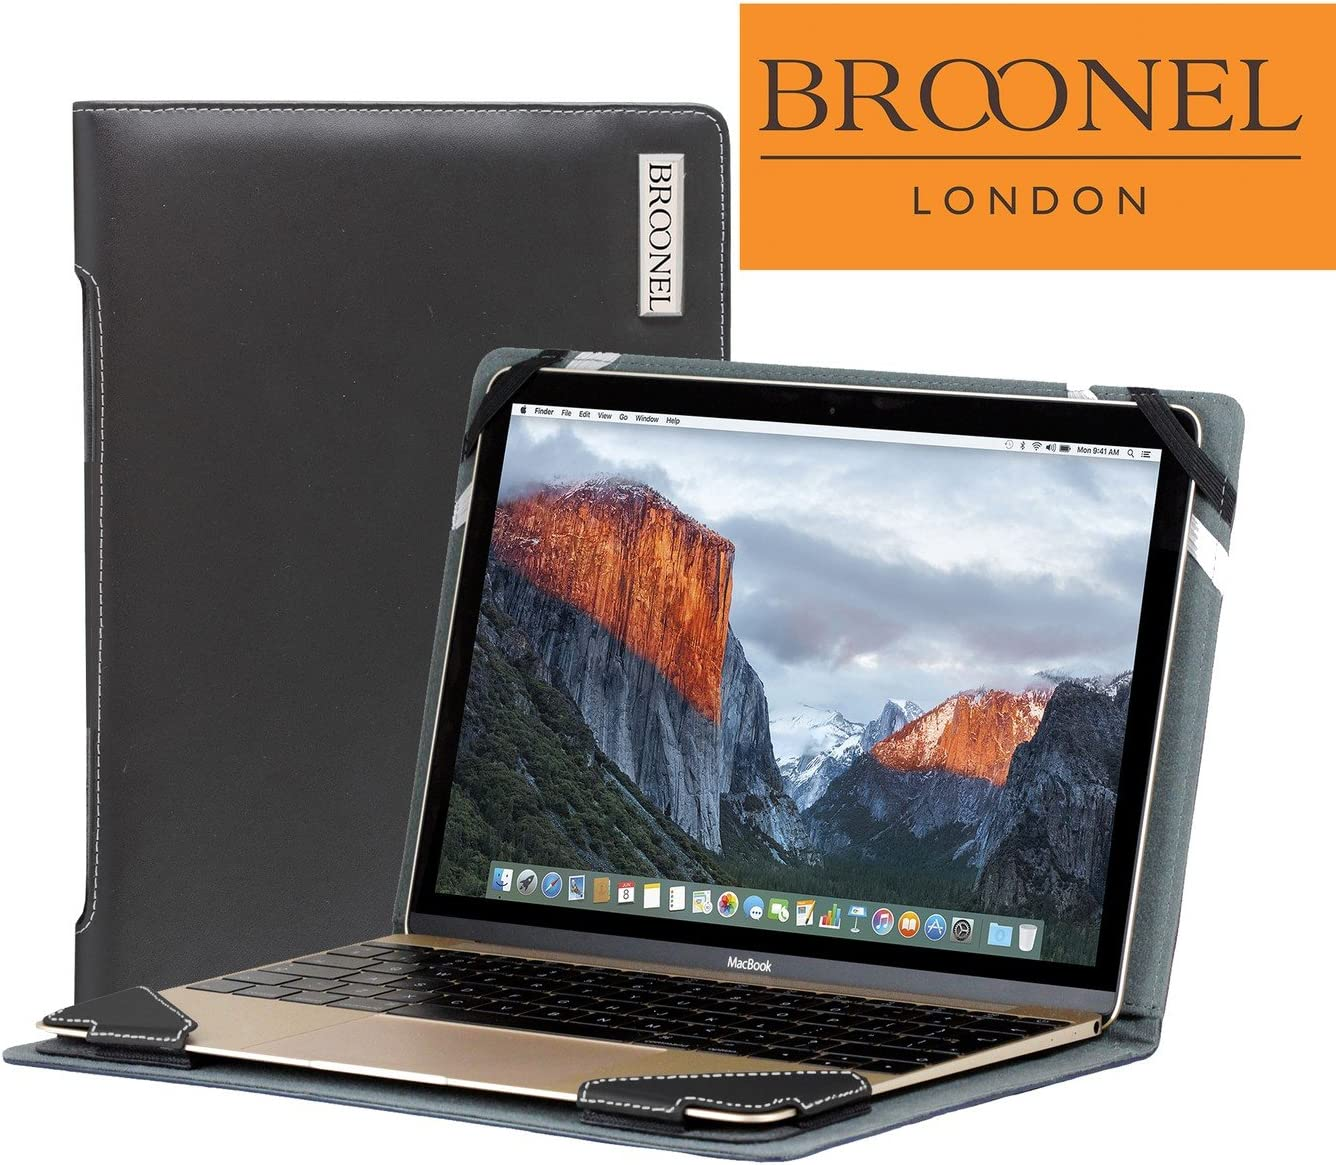 Broonel London - Profile Series - Black Leather Luxury Laptop Case For the Acer Chromebook R 11 (CB5-132T-C1LK)